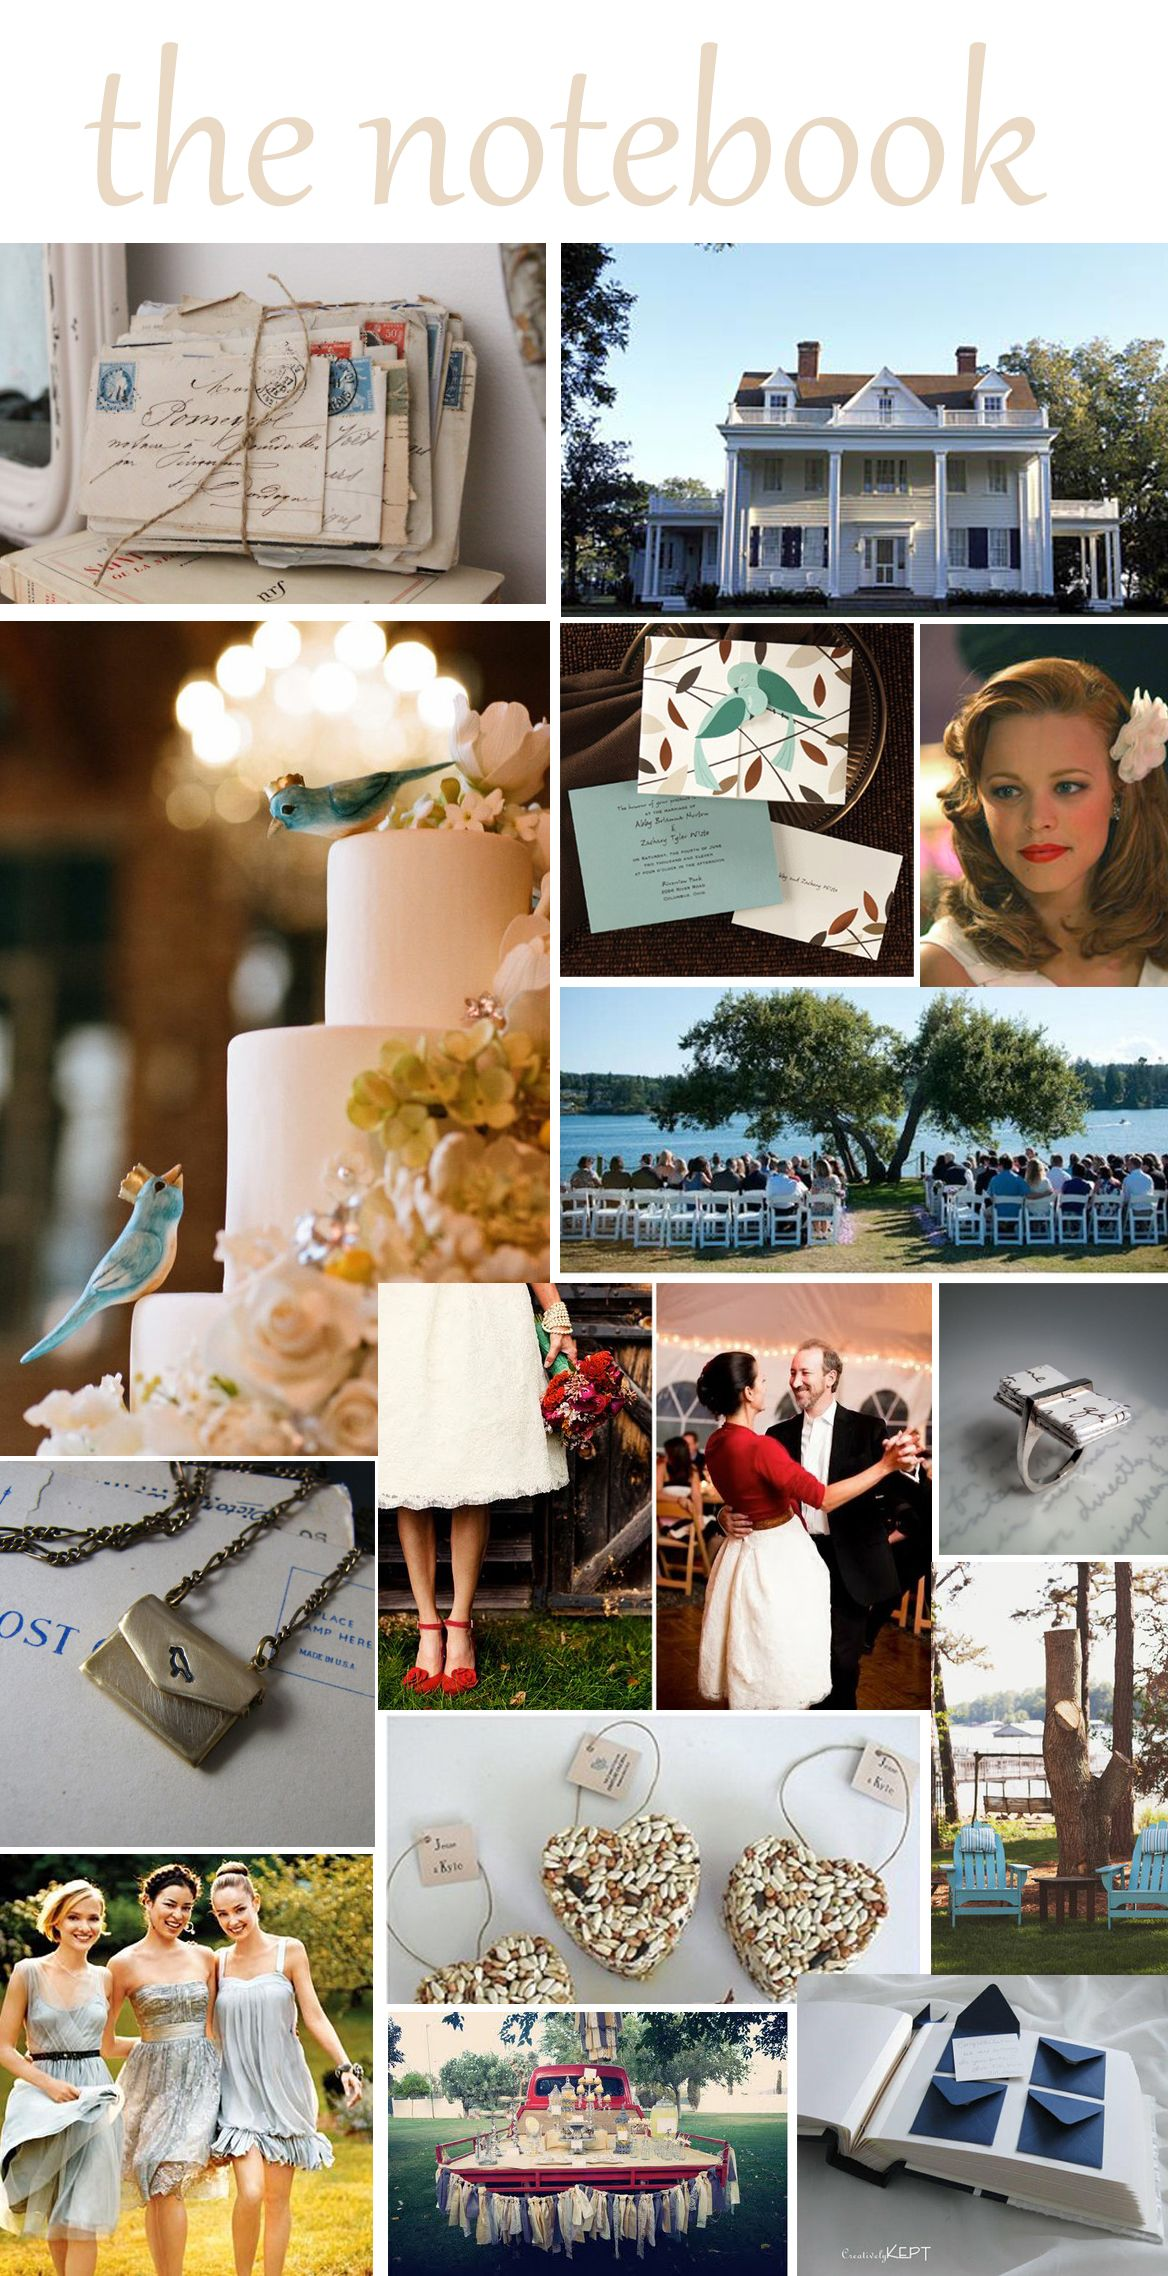 The Notebook Wedding Inspiration Surprisingly Some Favorable Ideas In Here